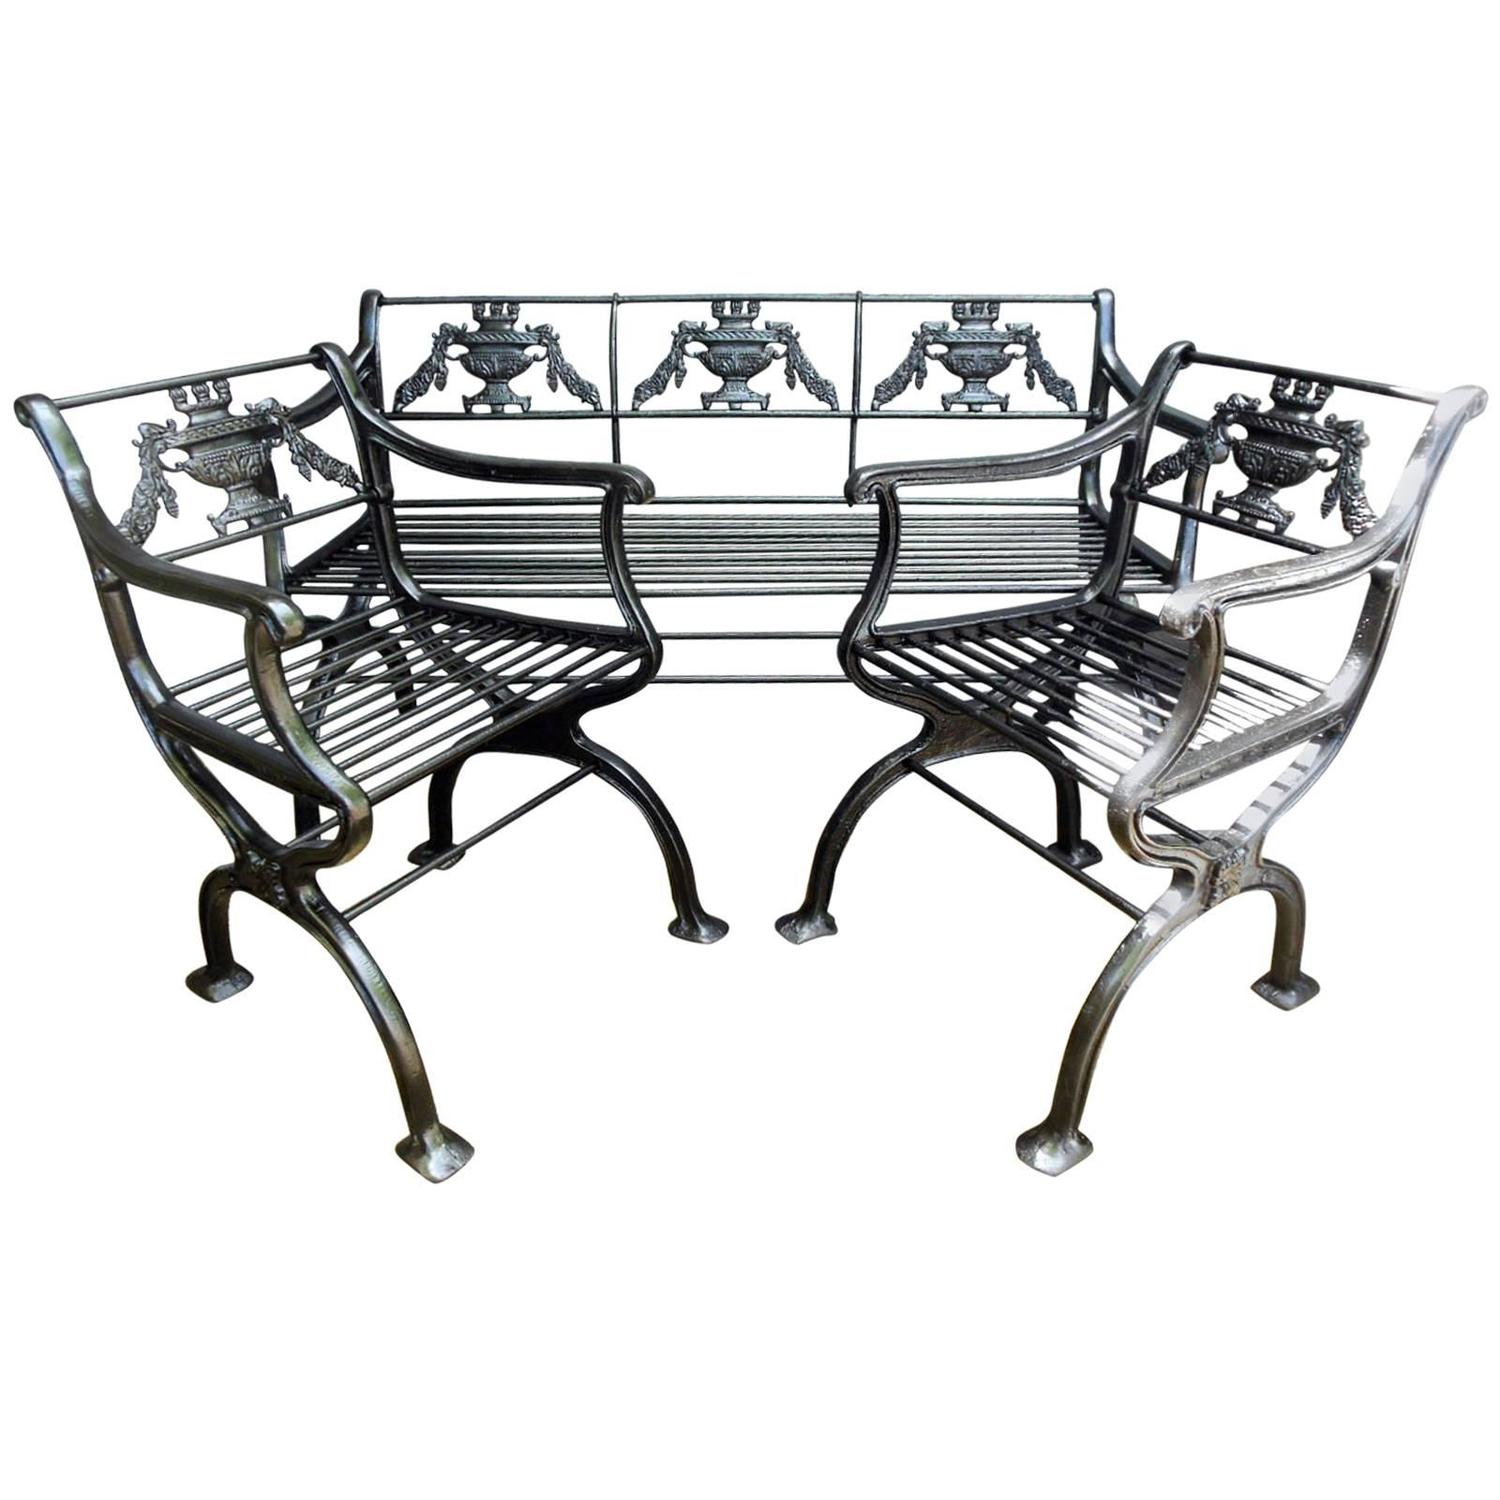 antique cast iron garden table and chairs black eames chair replica regency set bench for